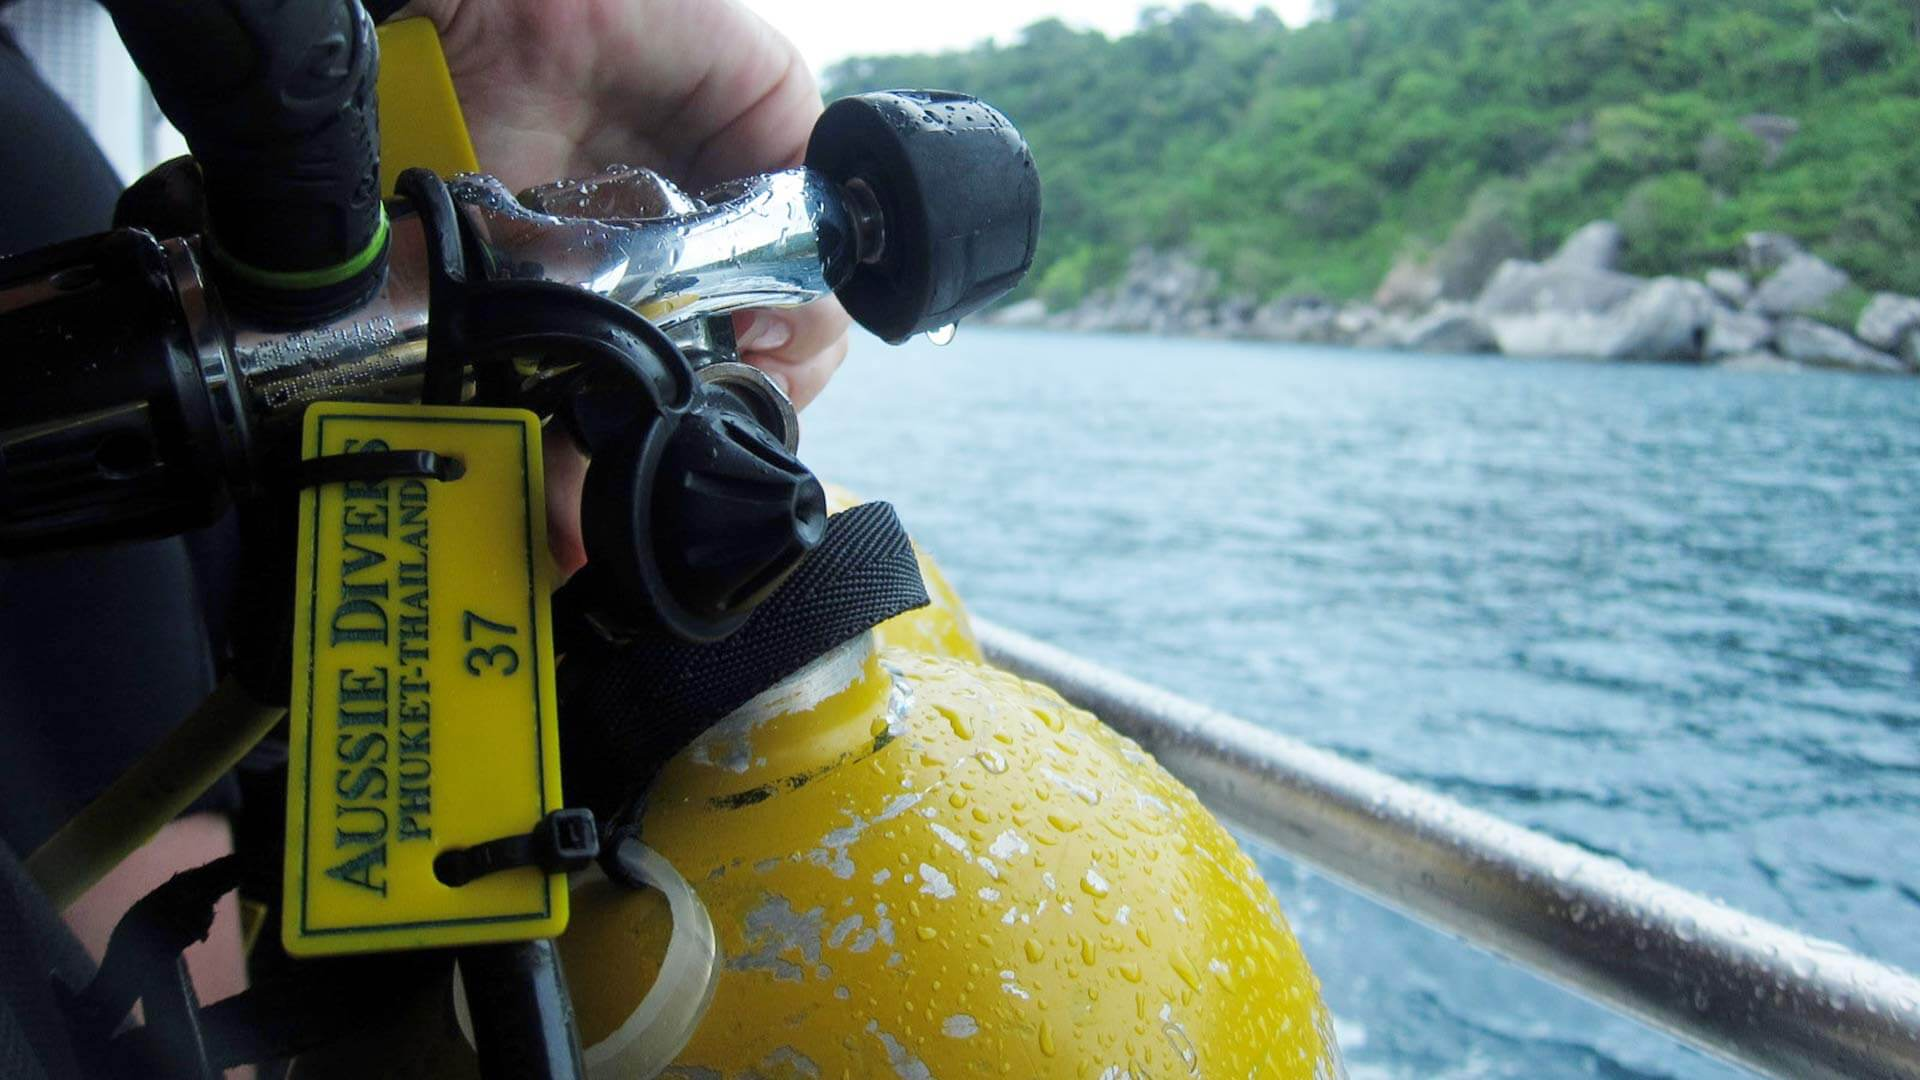 PADI courses that could save you a lot of money